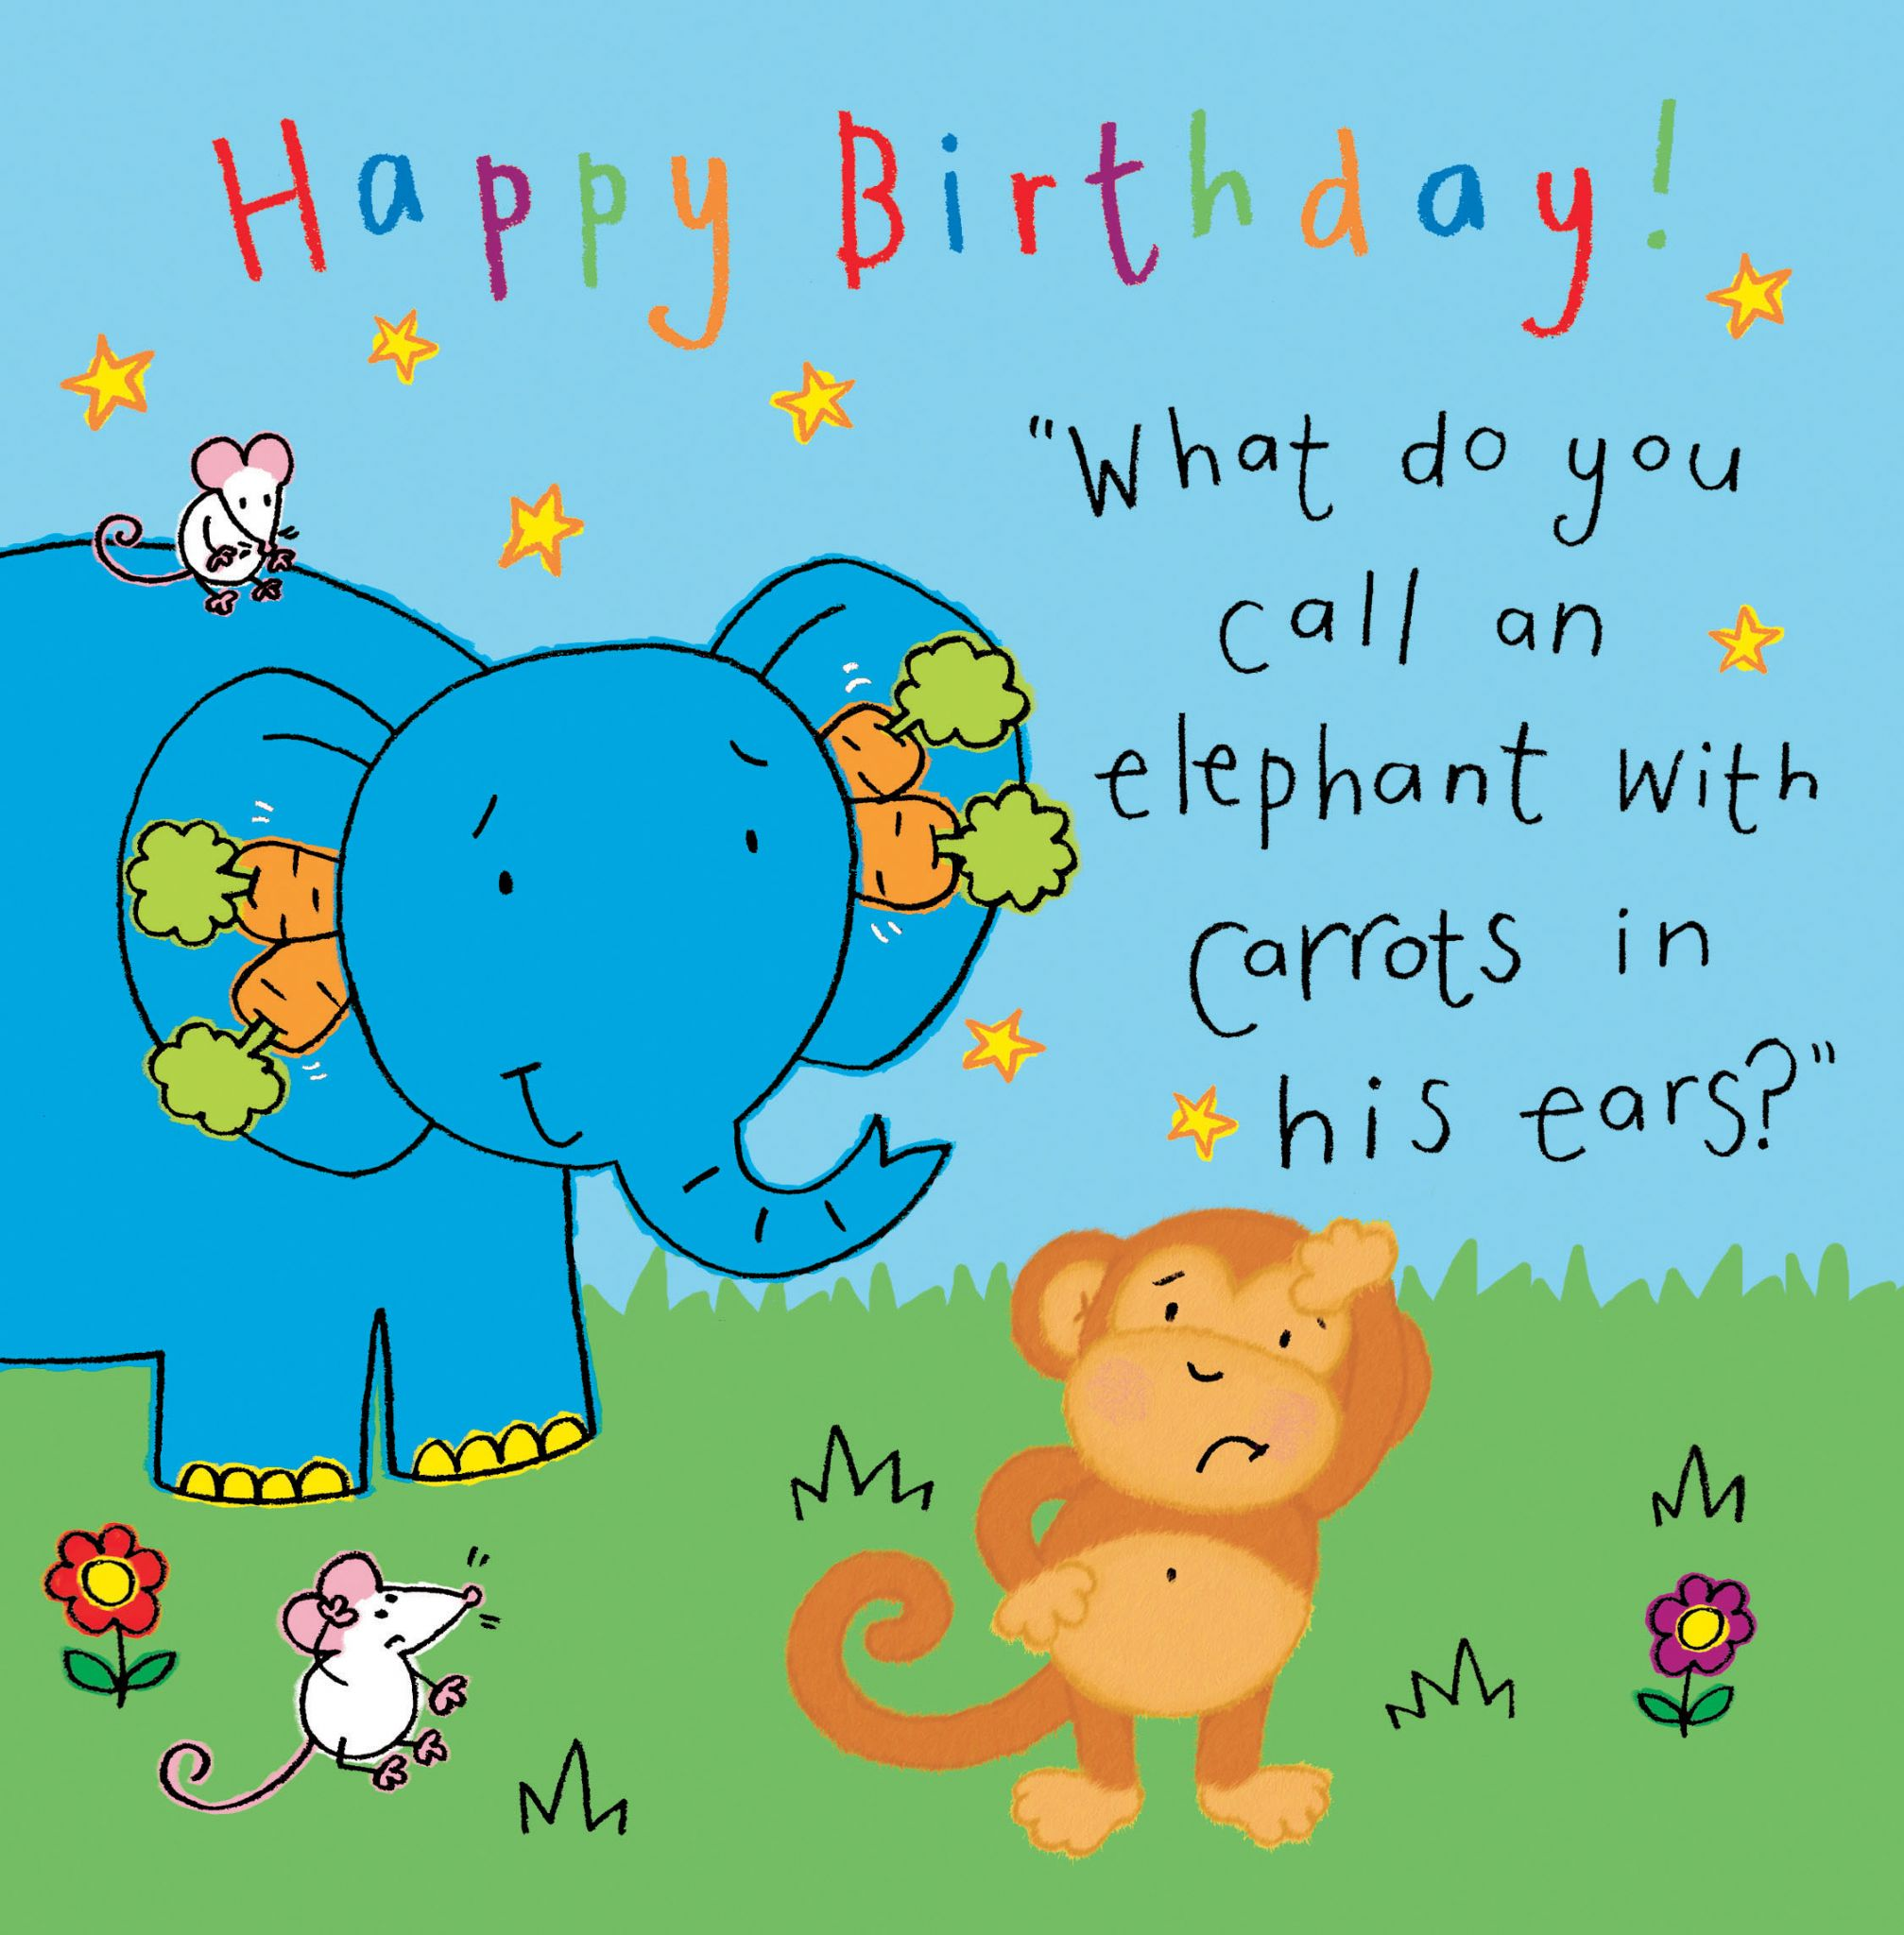 Elephant Funny Joke Birthday Card For Kids Tw431 4476 P